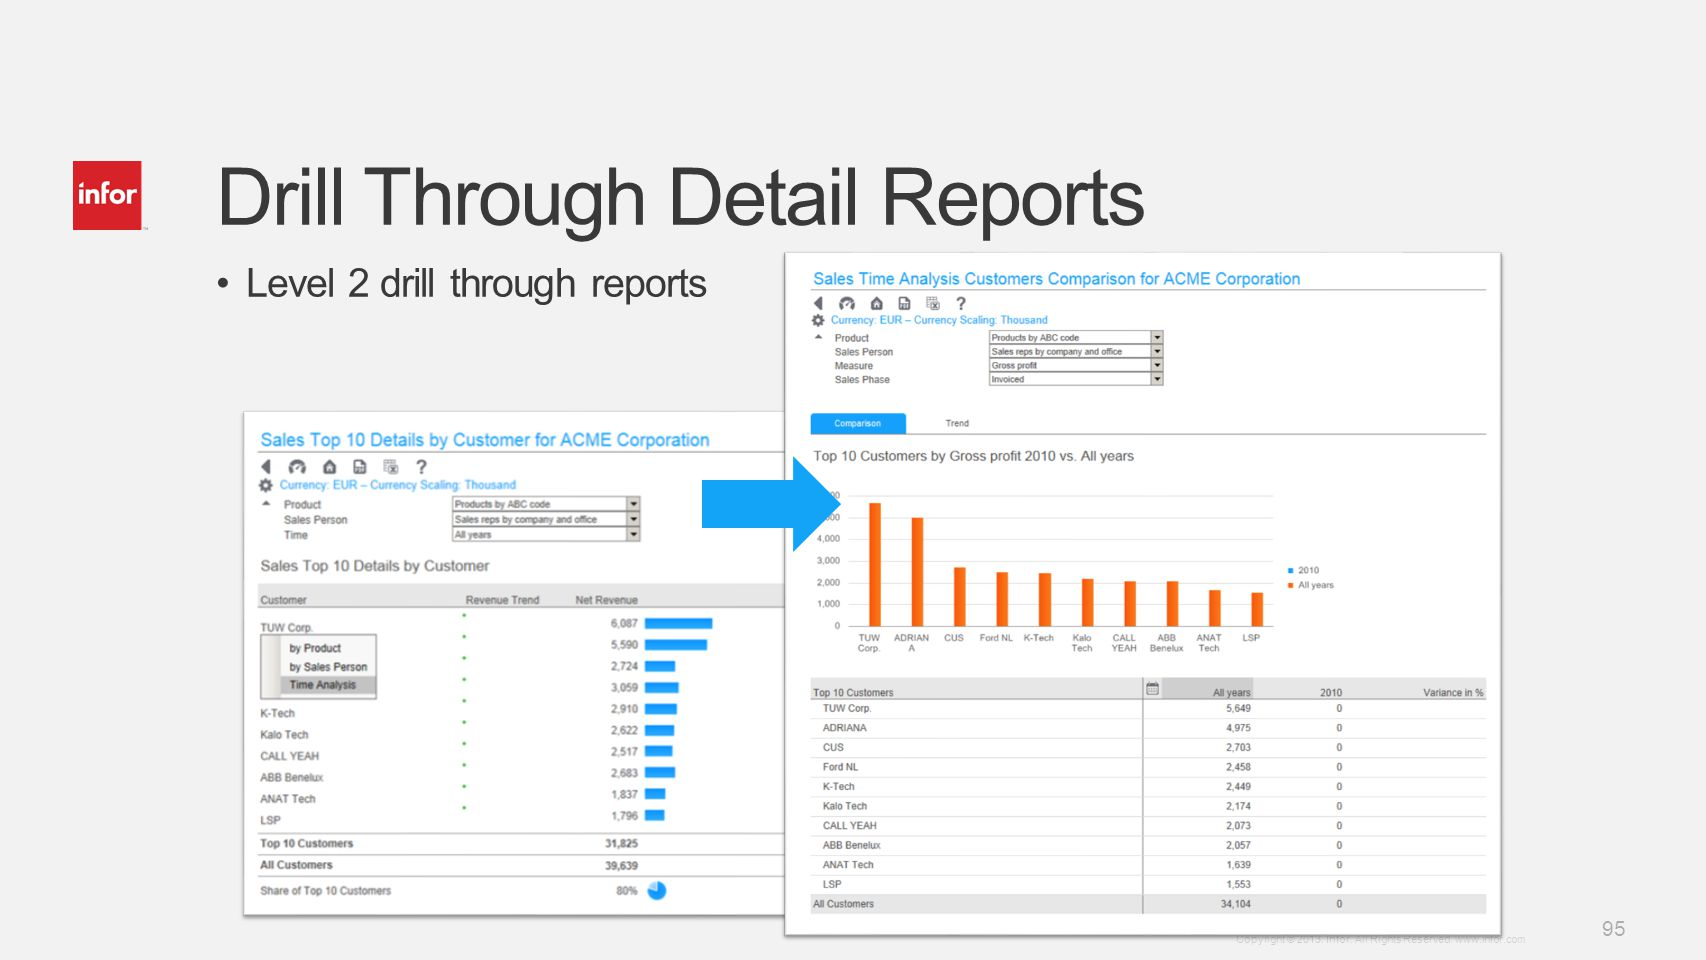 Template v5 October 12, 2012 95 Copyright © 2013. Infor. All Rights Reserved. www.infor.com Drill Through Detail Reports Level 2 drill through reports